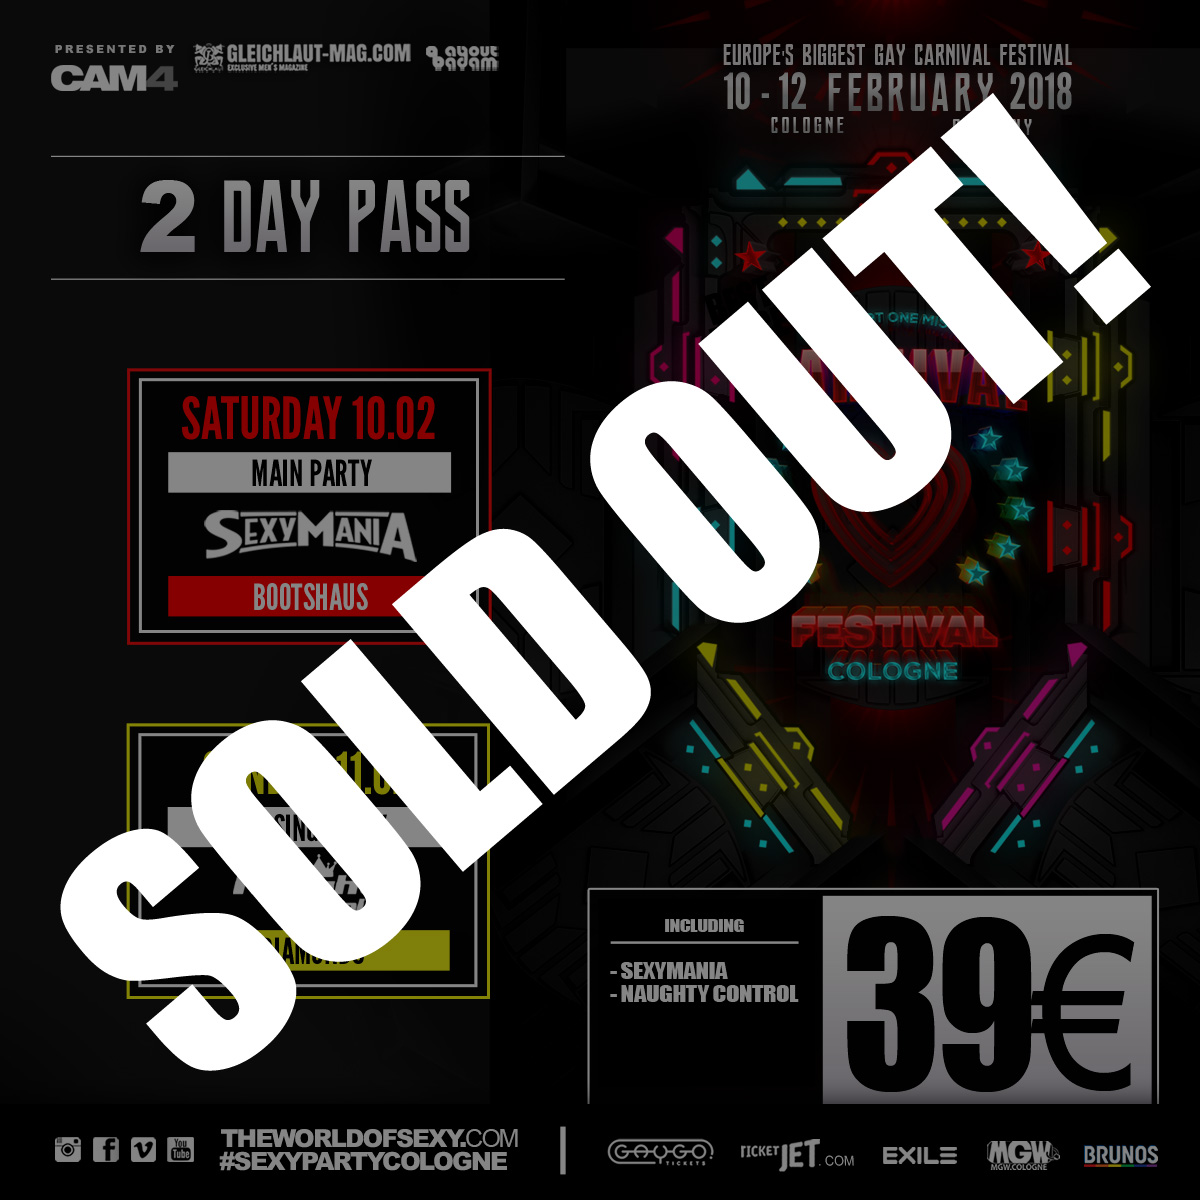 , ++ 2 DAY Pass ++ SOLD OUT! ++